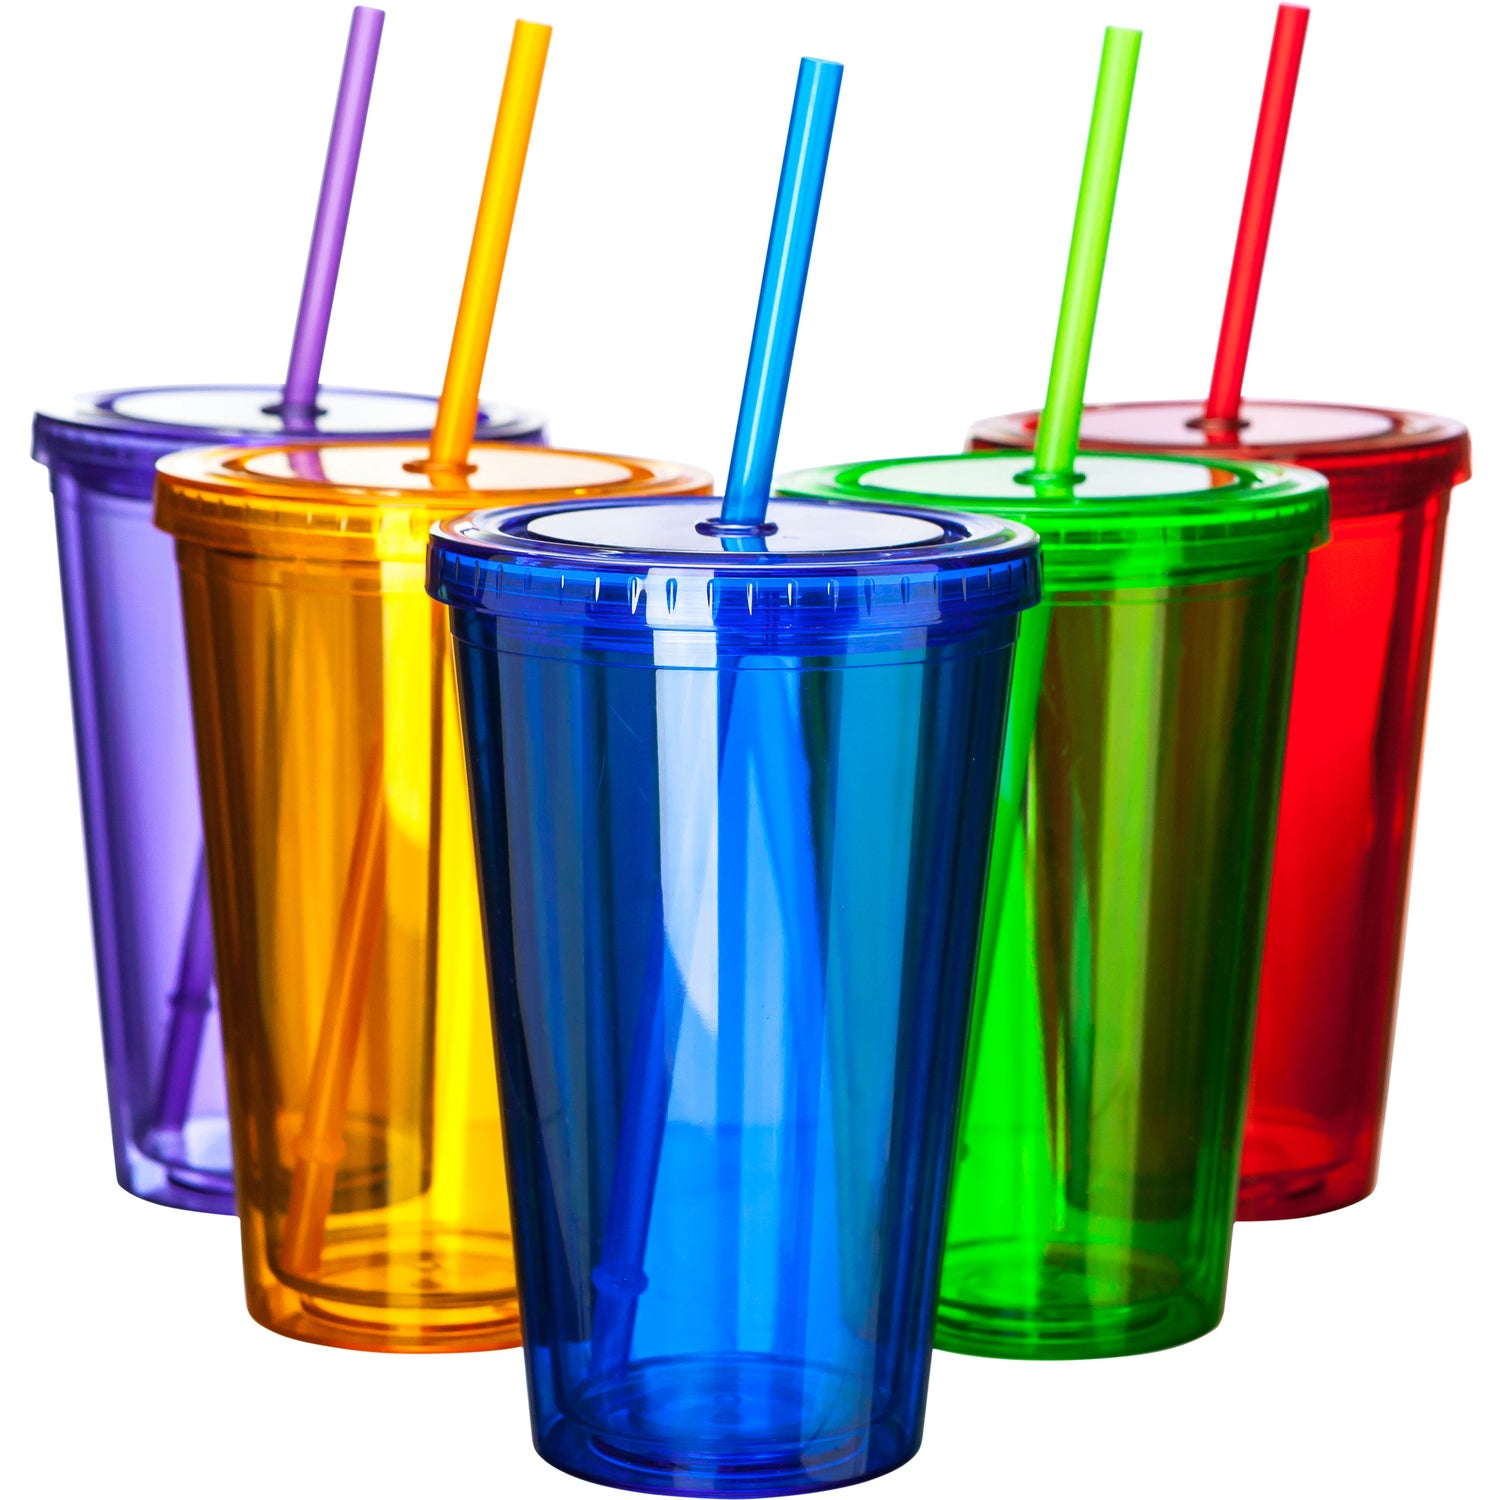 cbc74ebaedd CLICK HERE to Order 16 Oz. Double Wall Acrylic Tumbler With Straws Printed  with Your Logo for $3.23 Ea.